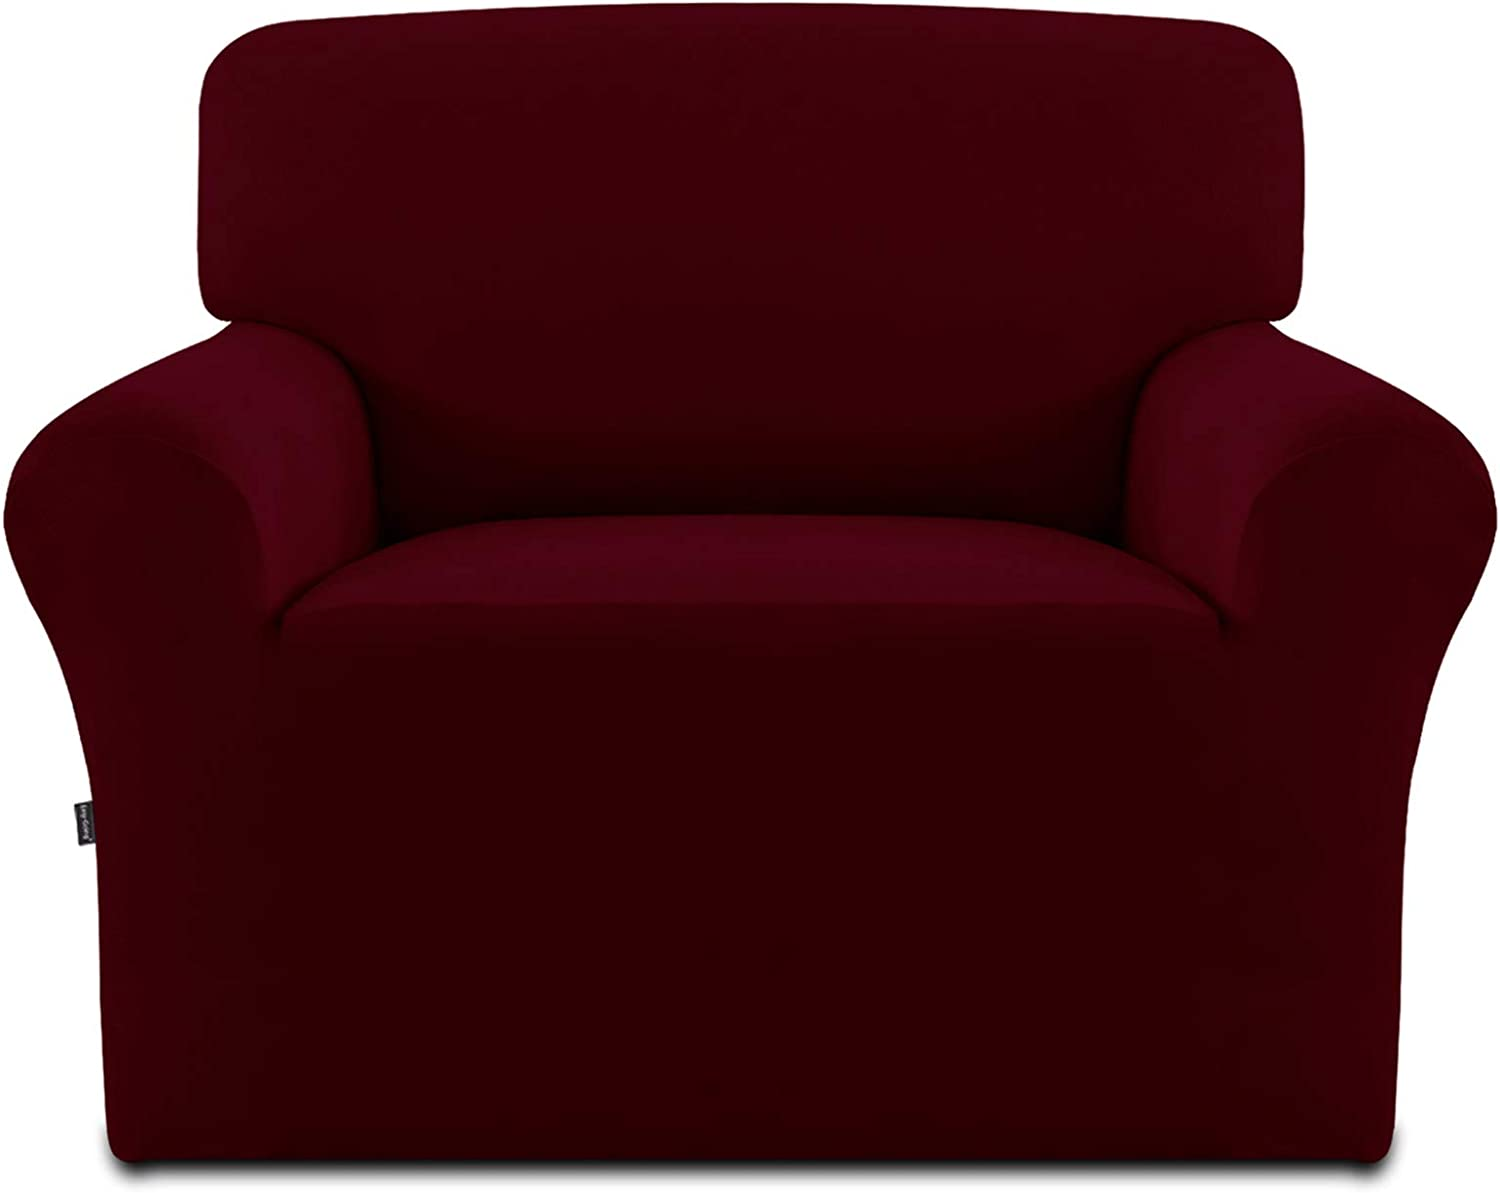 Easy-Going Fleece Stretch Sofa Slipcover – Spandex Anti-Slip Soft Couch Sofa Cover, Washable Furniture Protector with Anti-Skid Foam and Elastic Bottom for Kids, Pets(Chair,Wine)